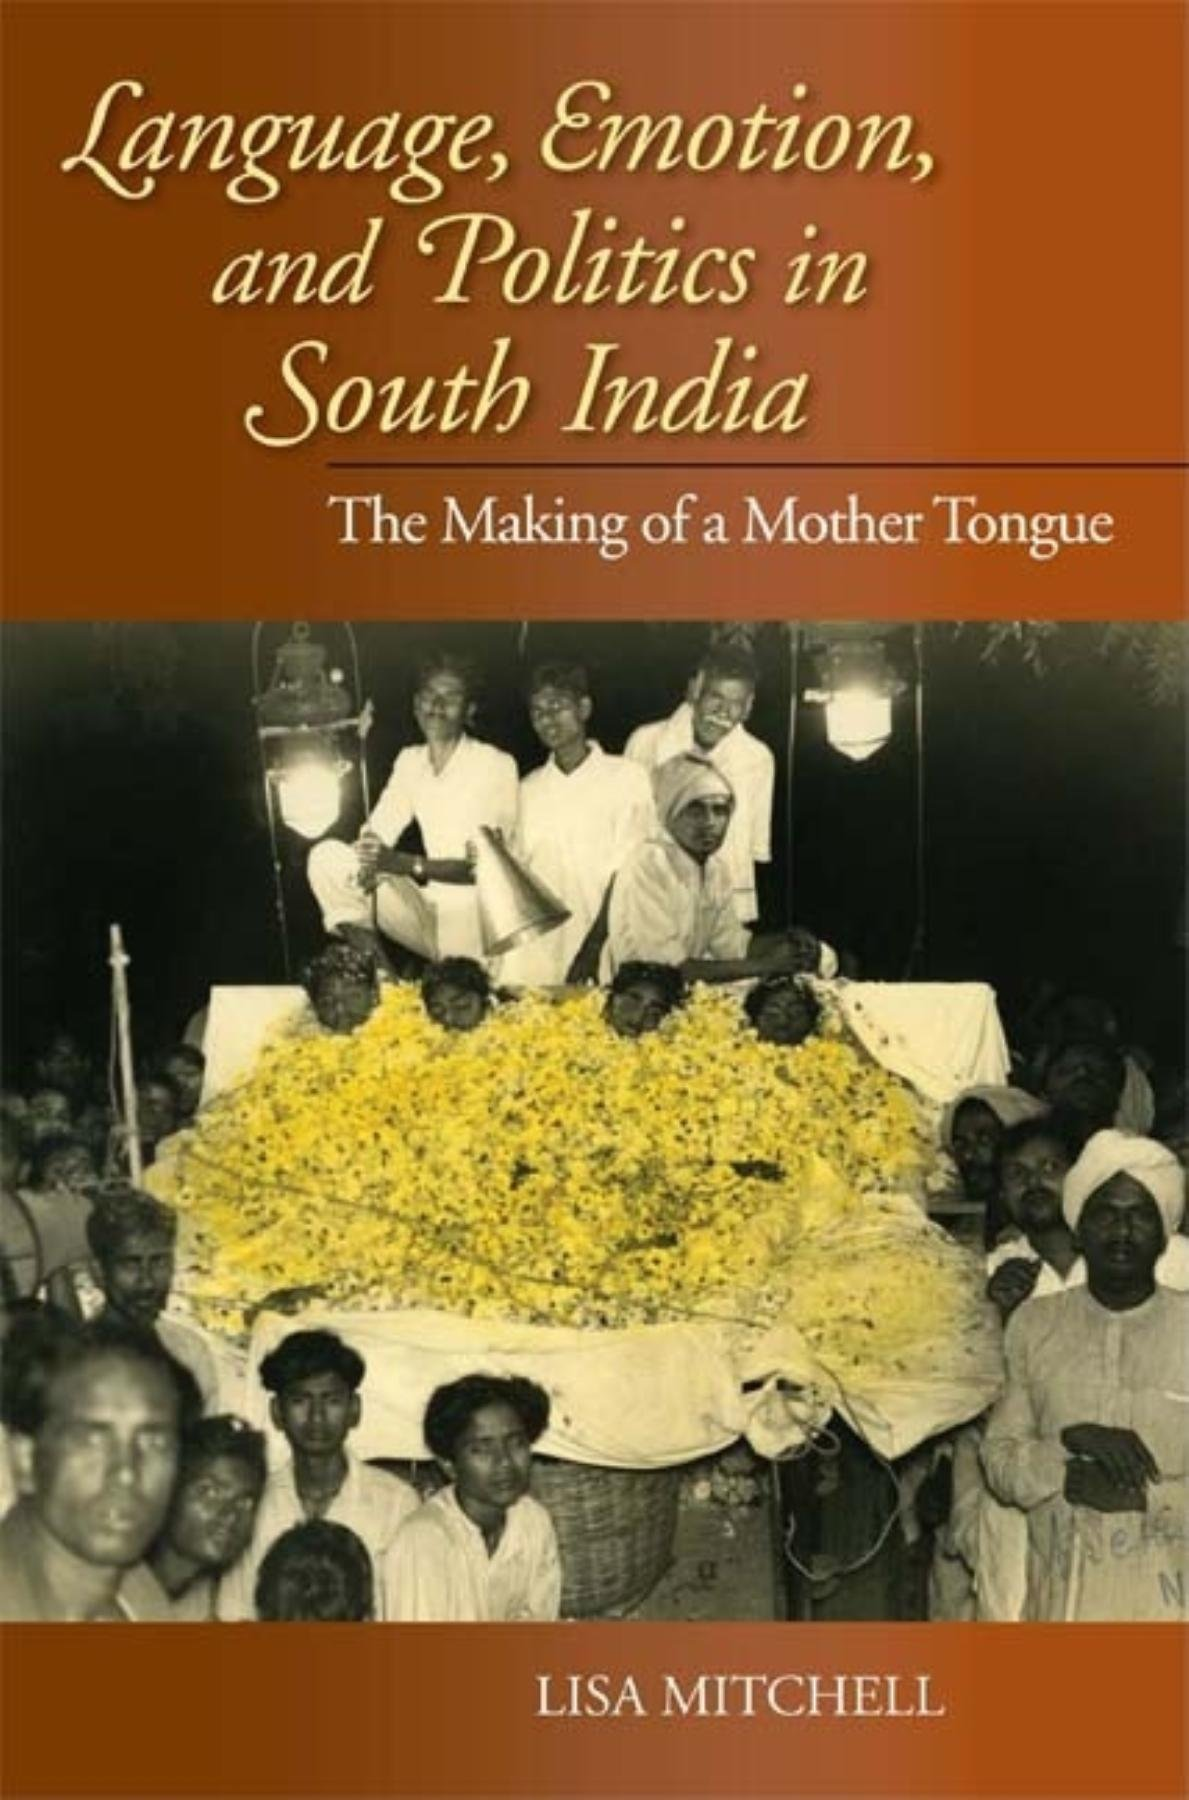 Language, Emotion, and Politics in South India: The Making of a Mother Tongue (Contemporary Indian Studies) by Indiana University Press